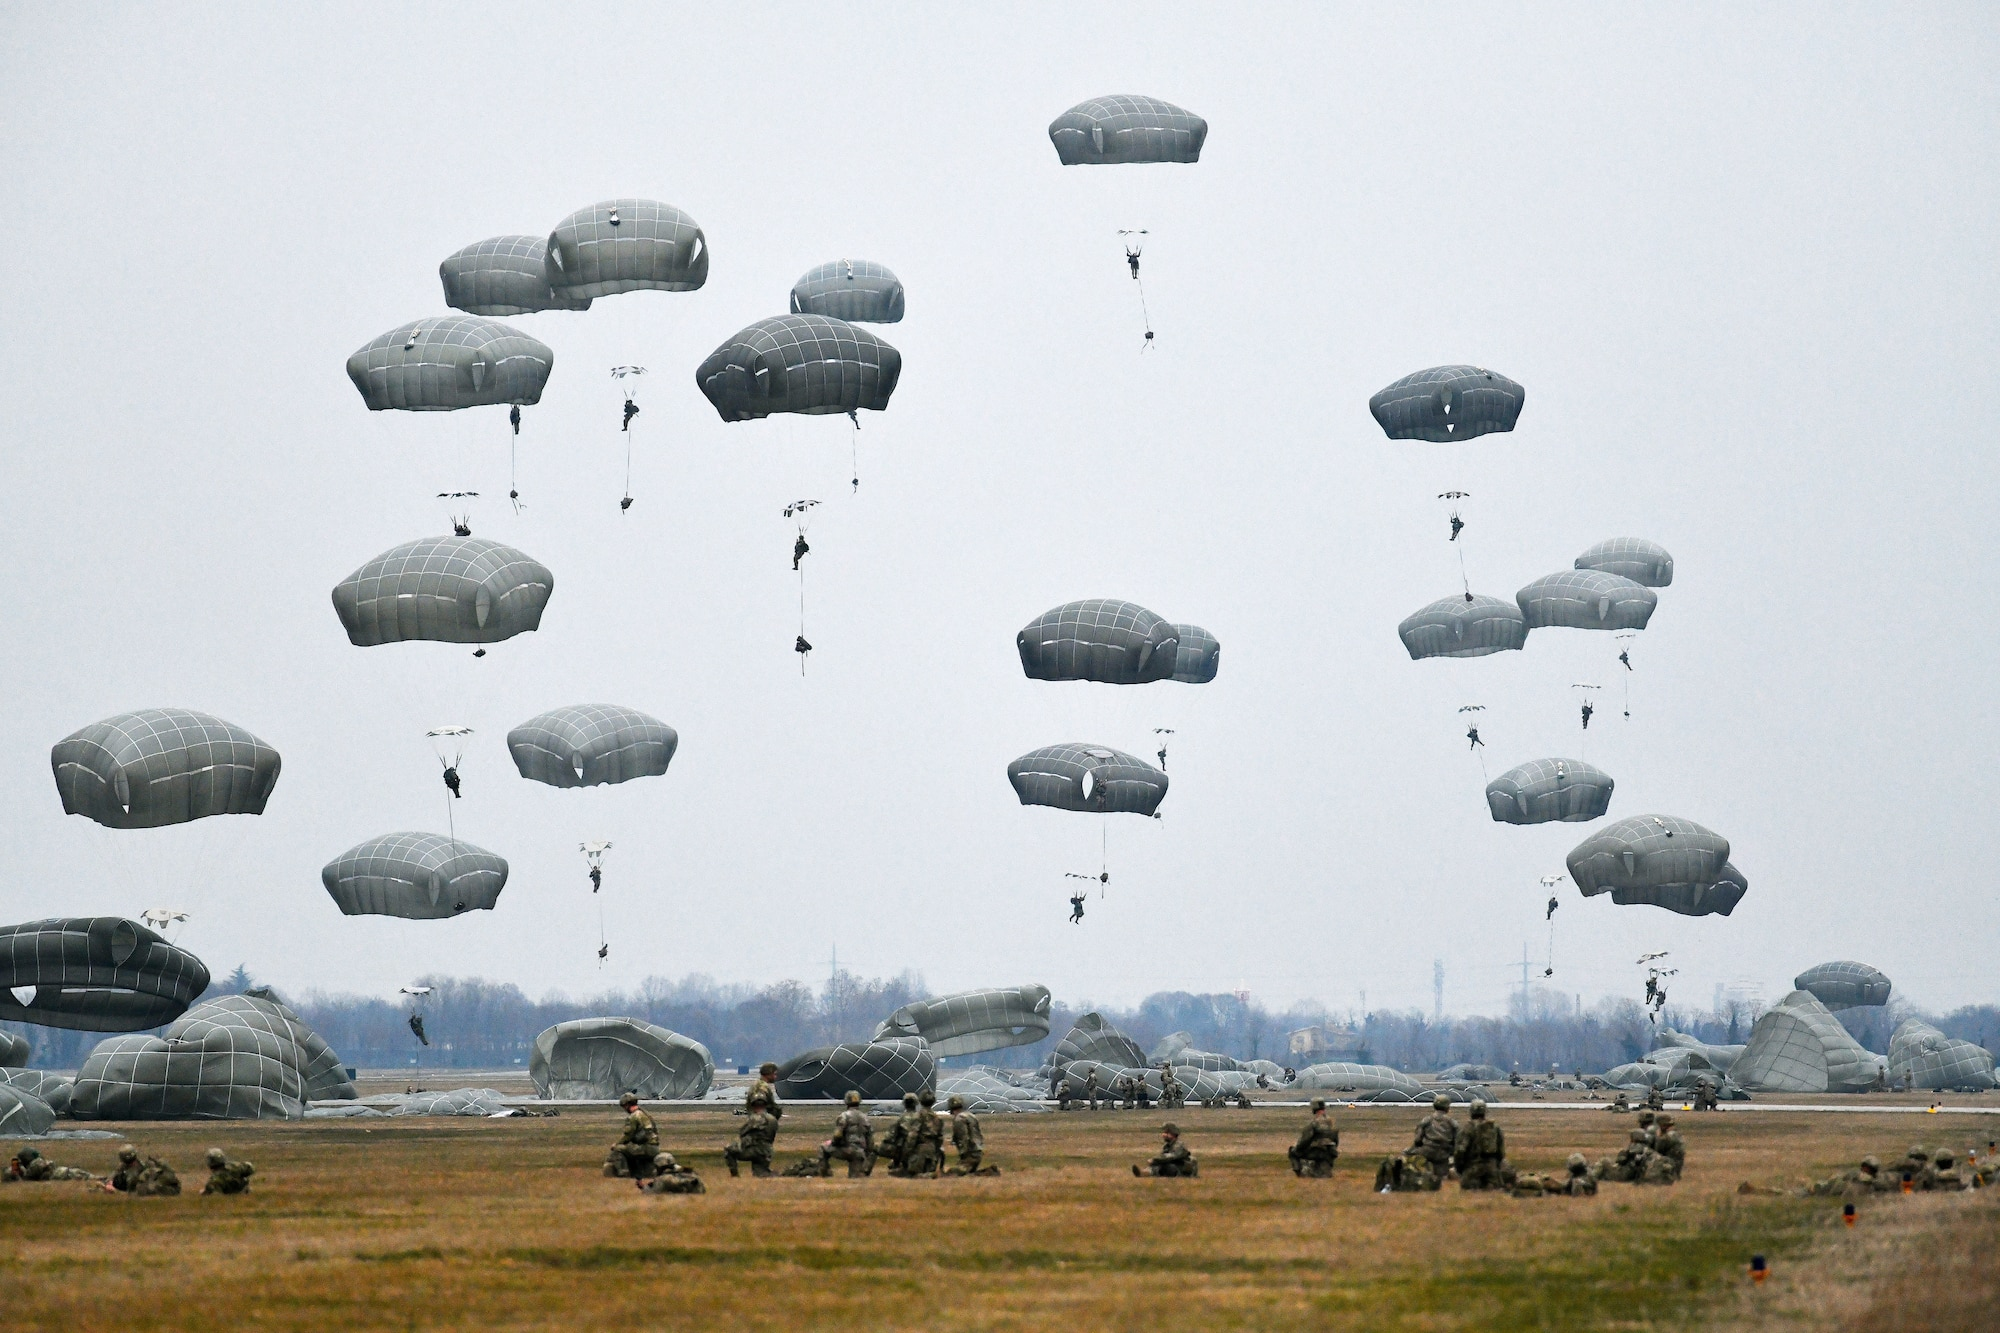 US Military News • NATO Airborne Operations • Exercise Eagle Ace II • Italy, Feb 18 2021